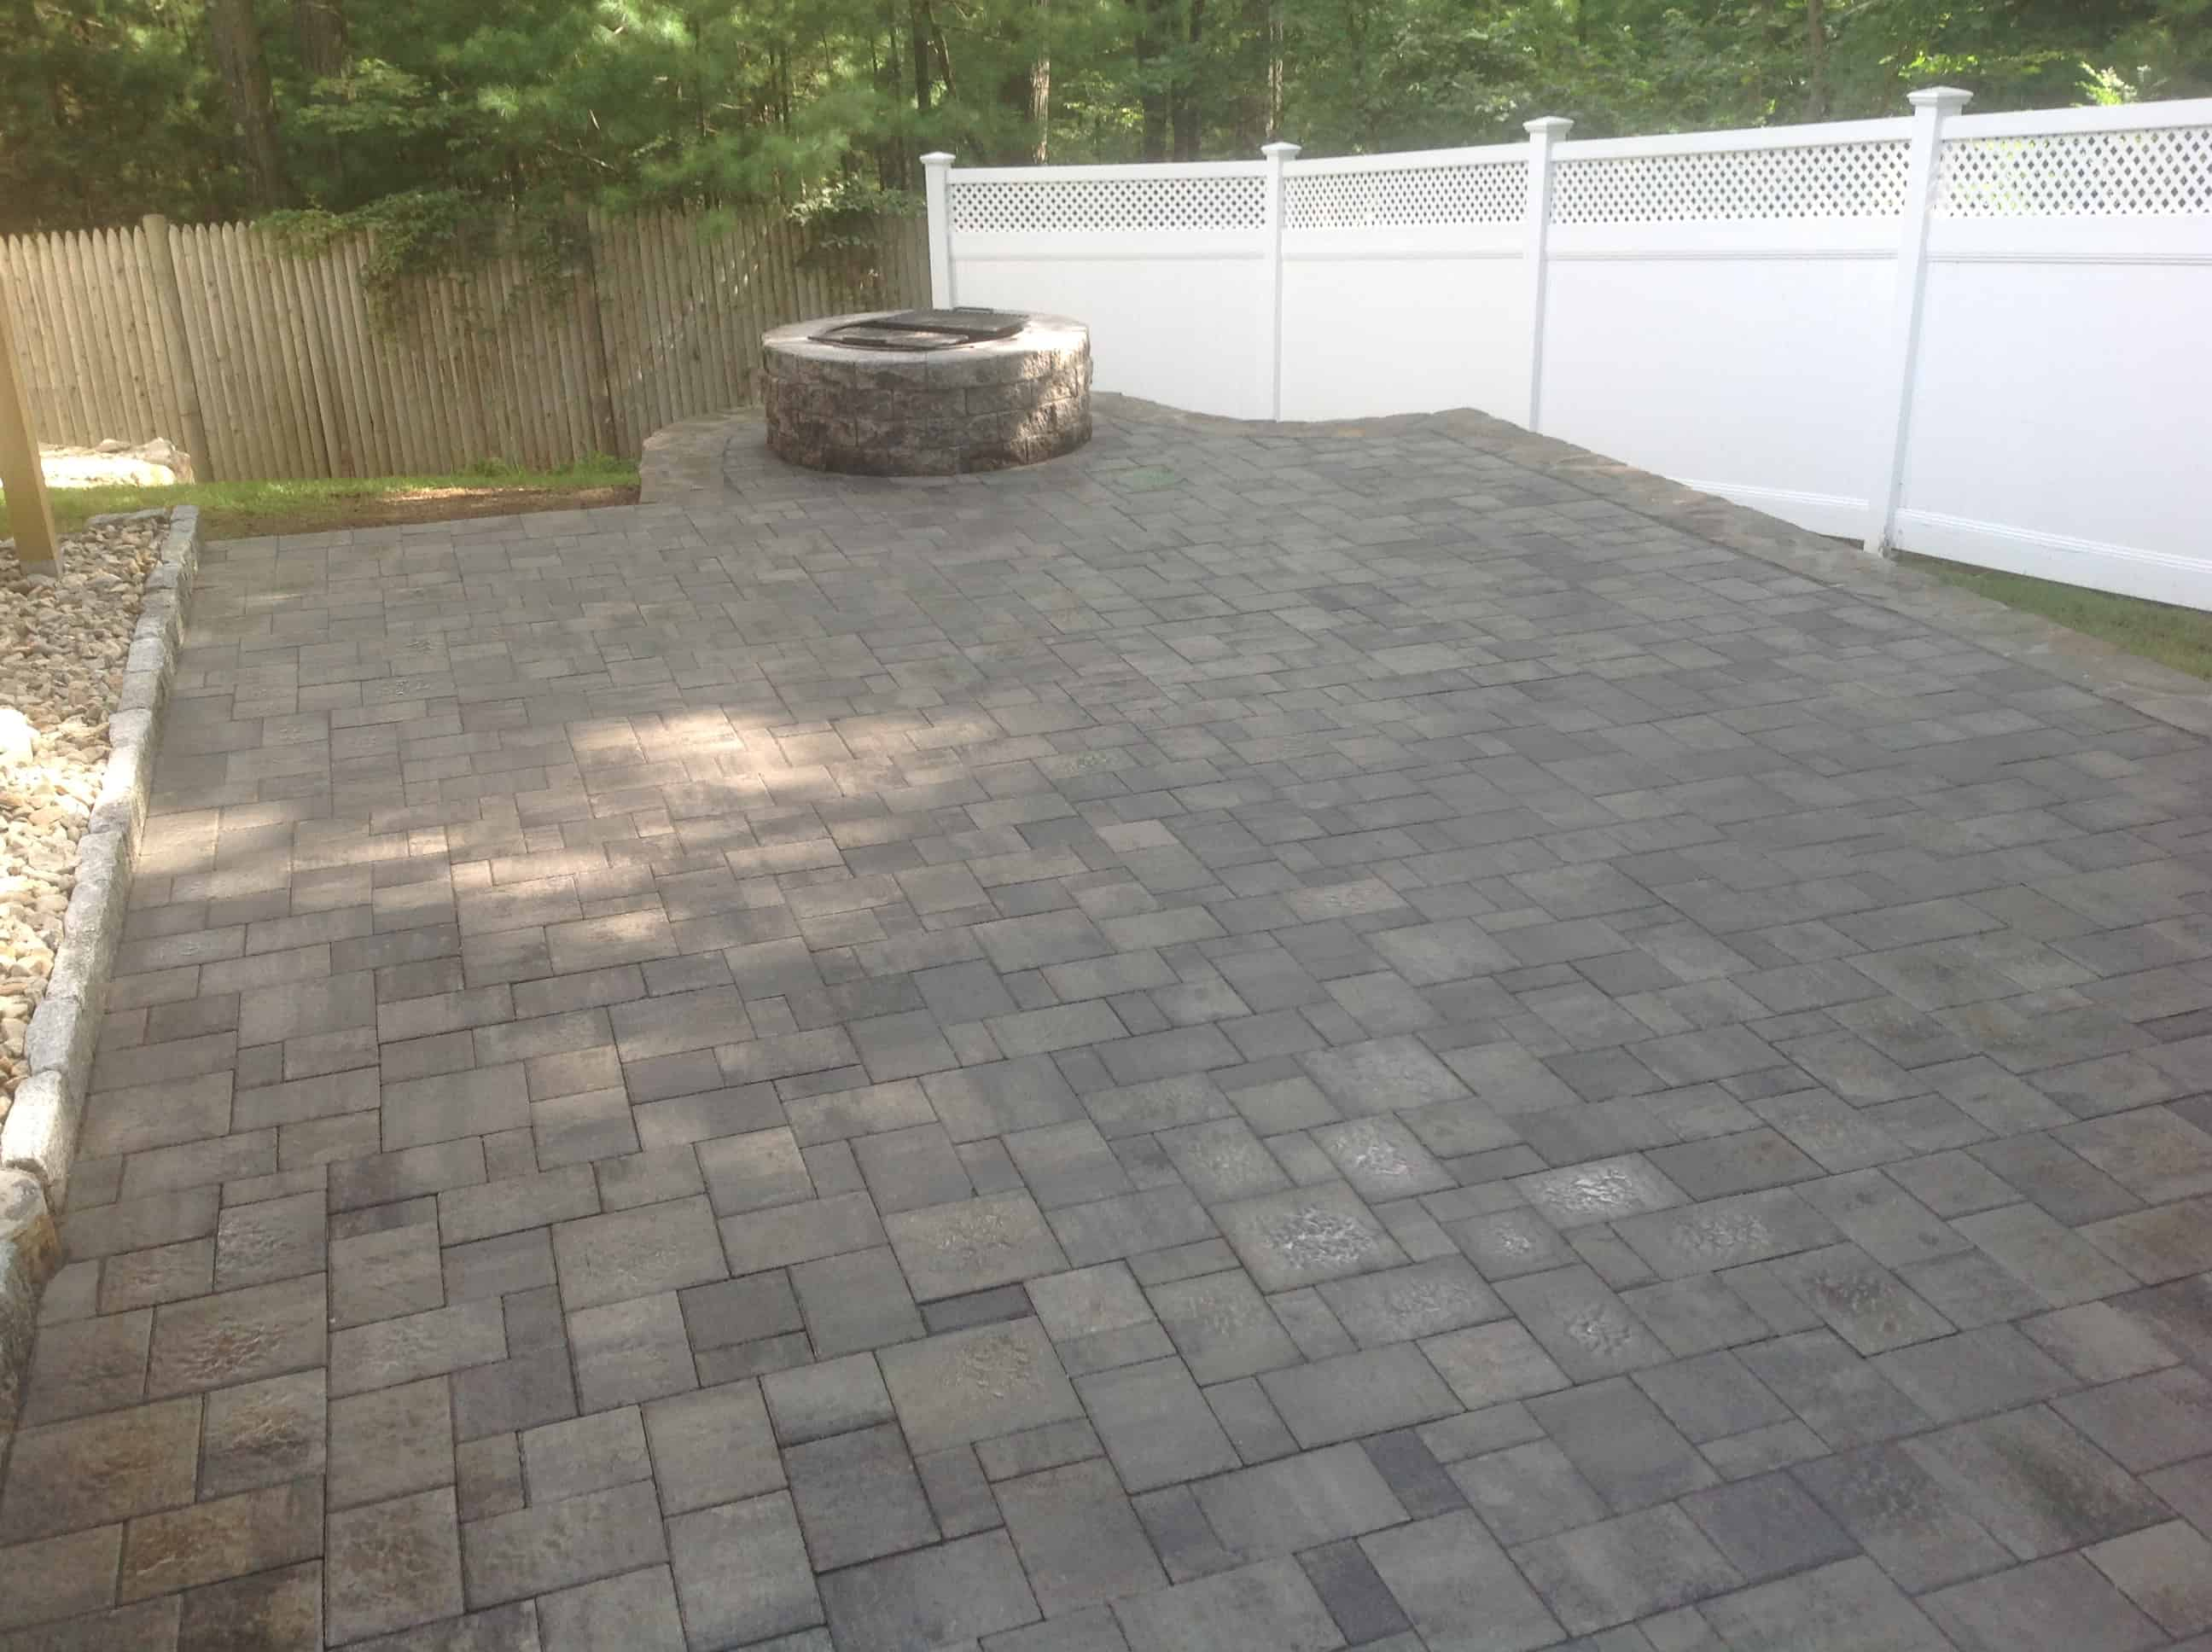 Patio Design - Quality Landscaping